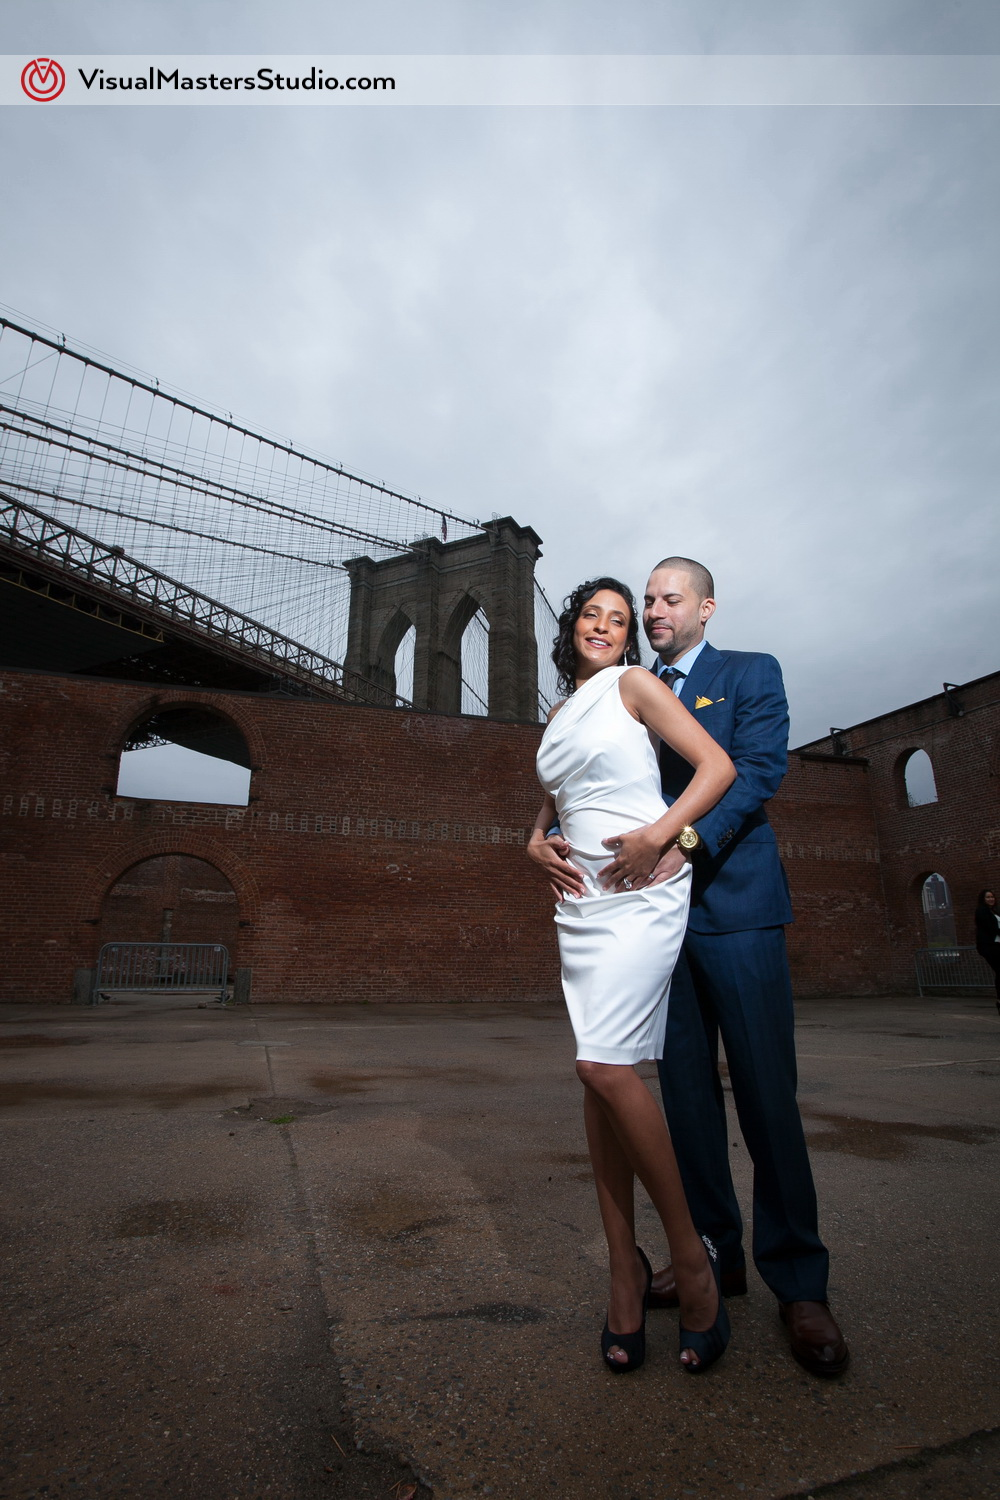 Bride and Groom Posing by Brooklyn Bridge by Visual Masters